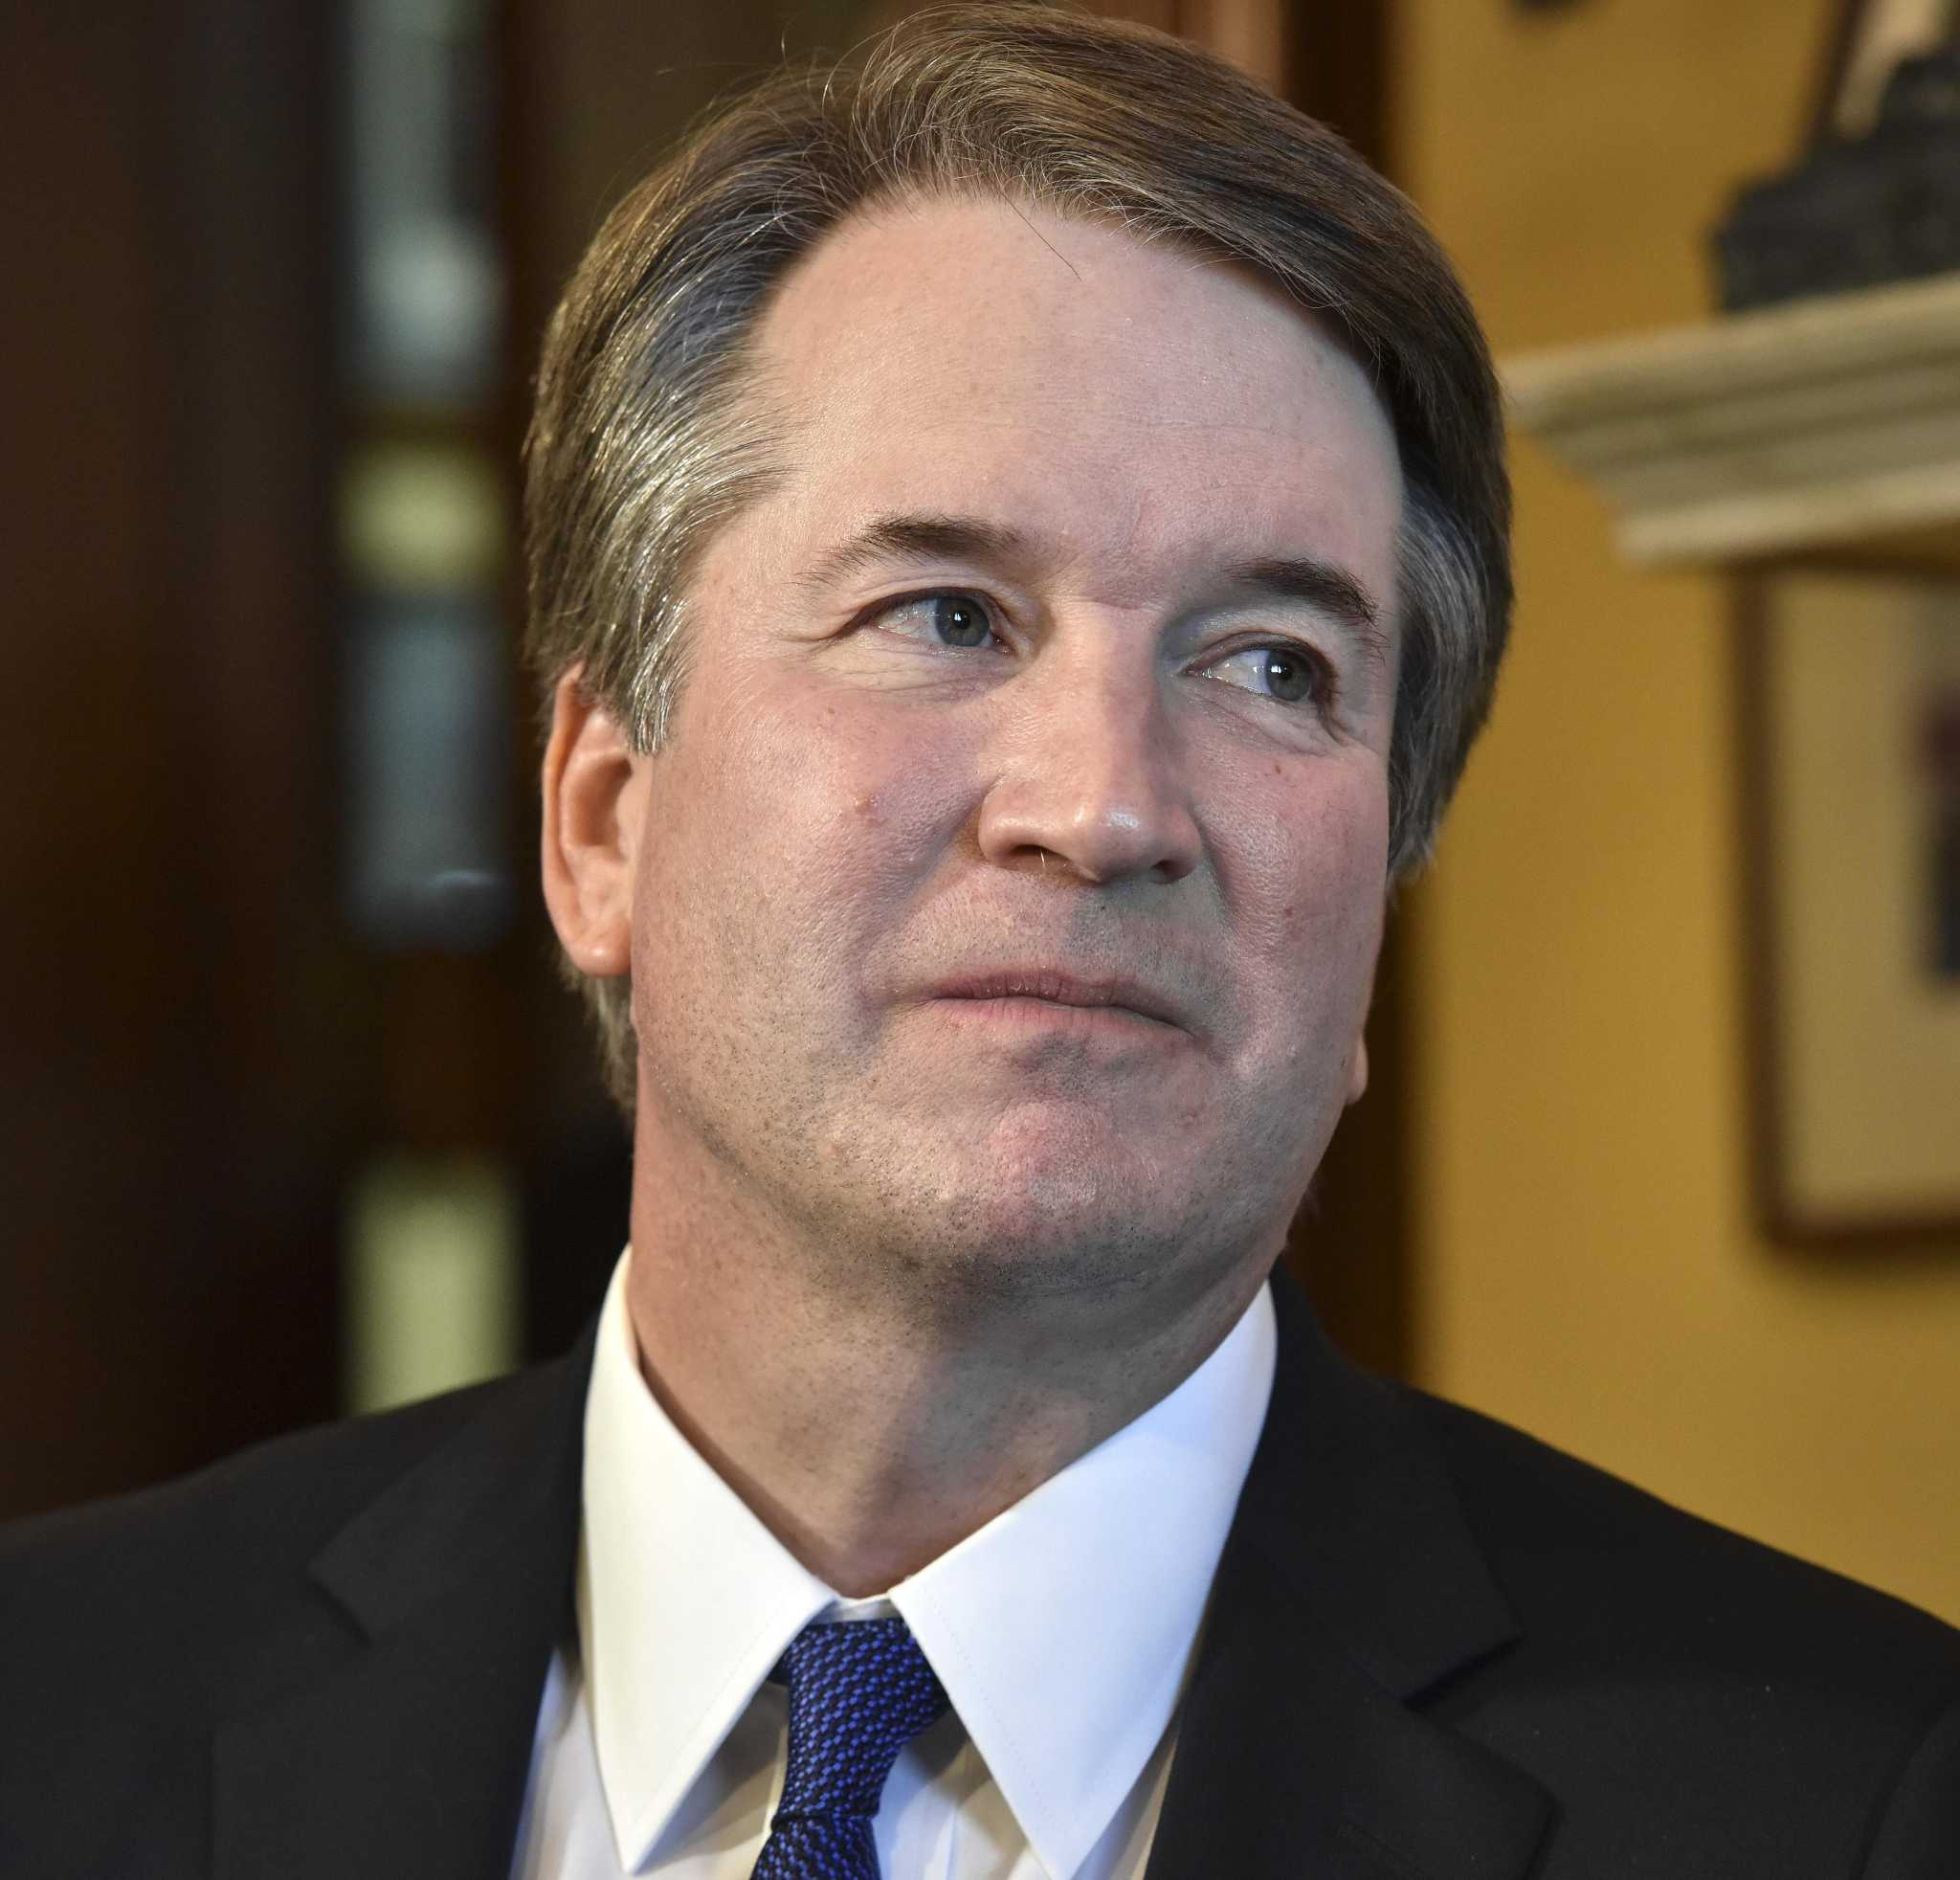 JUDGE KAVANAUGH IS AN EXTRAORDINARILY QUALIFIED NOMINEE CONSISTENTLY AMONG THE BEST OF THE BEST IN THE LAW Judge Kavanaugh has served on the US Court of Appeals